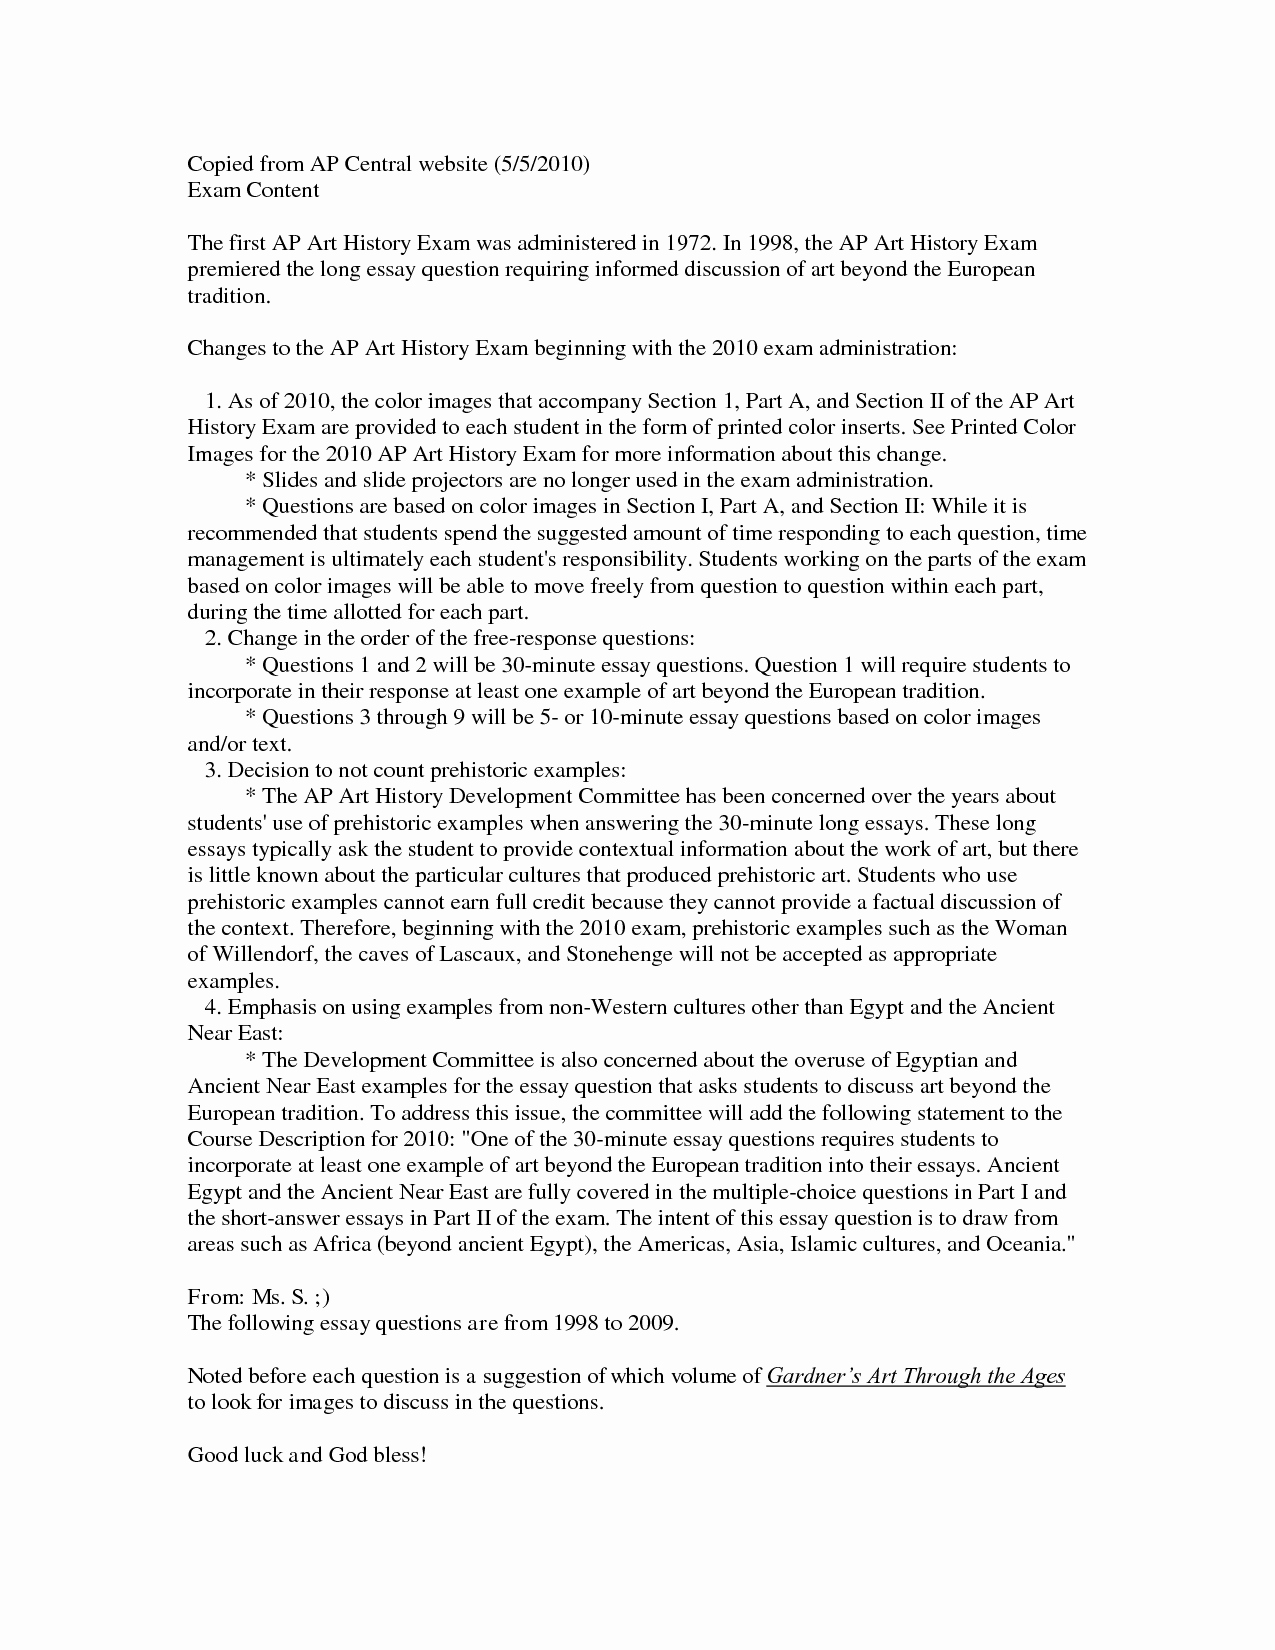 Sat Essay Template Pdf Lovely 19 History Essay Writing Examples Pdf